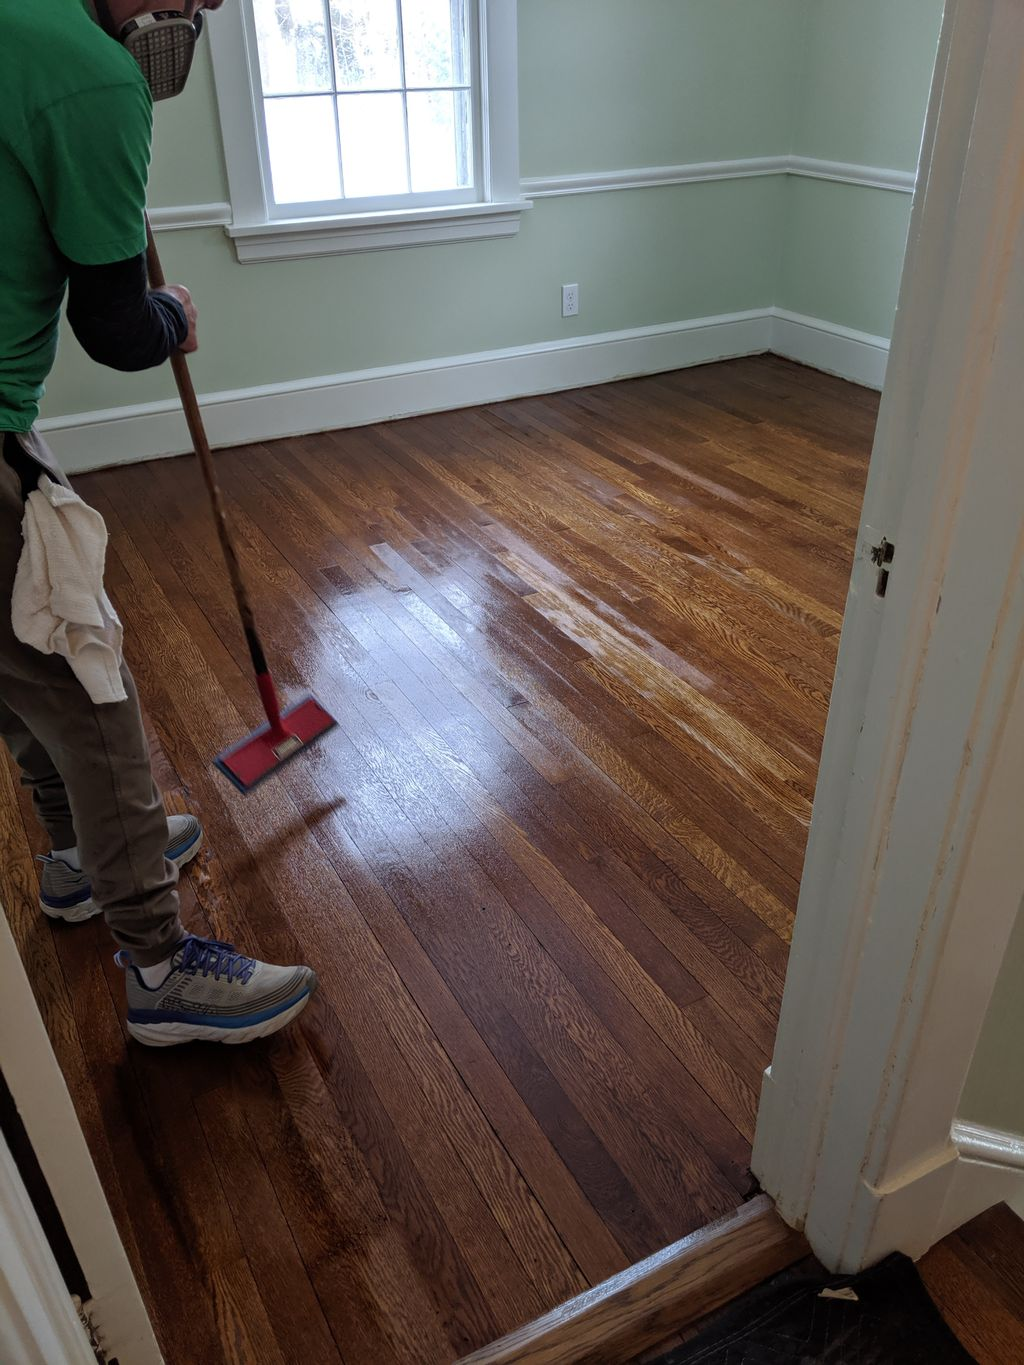 Match bedroom floors to the existing Floors in the hallway